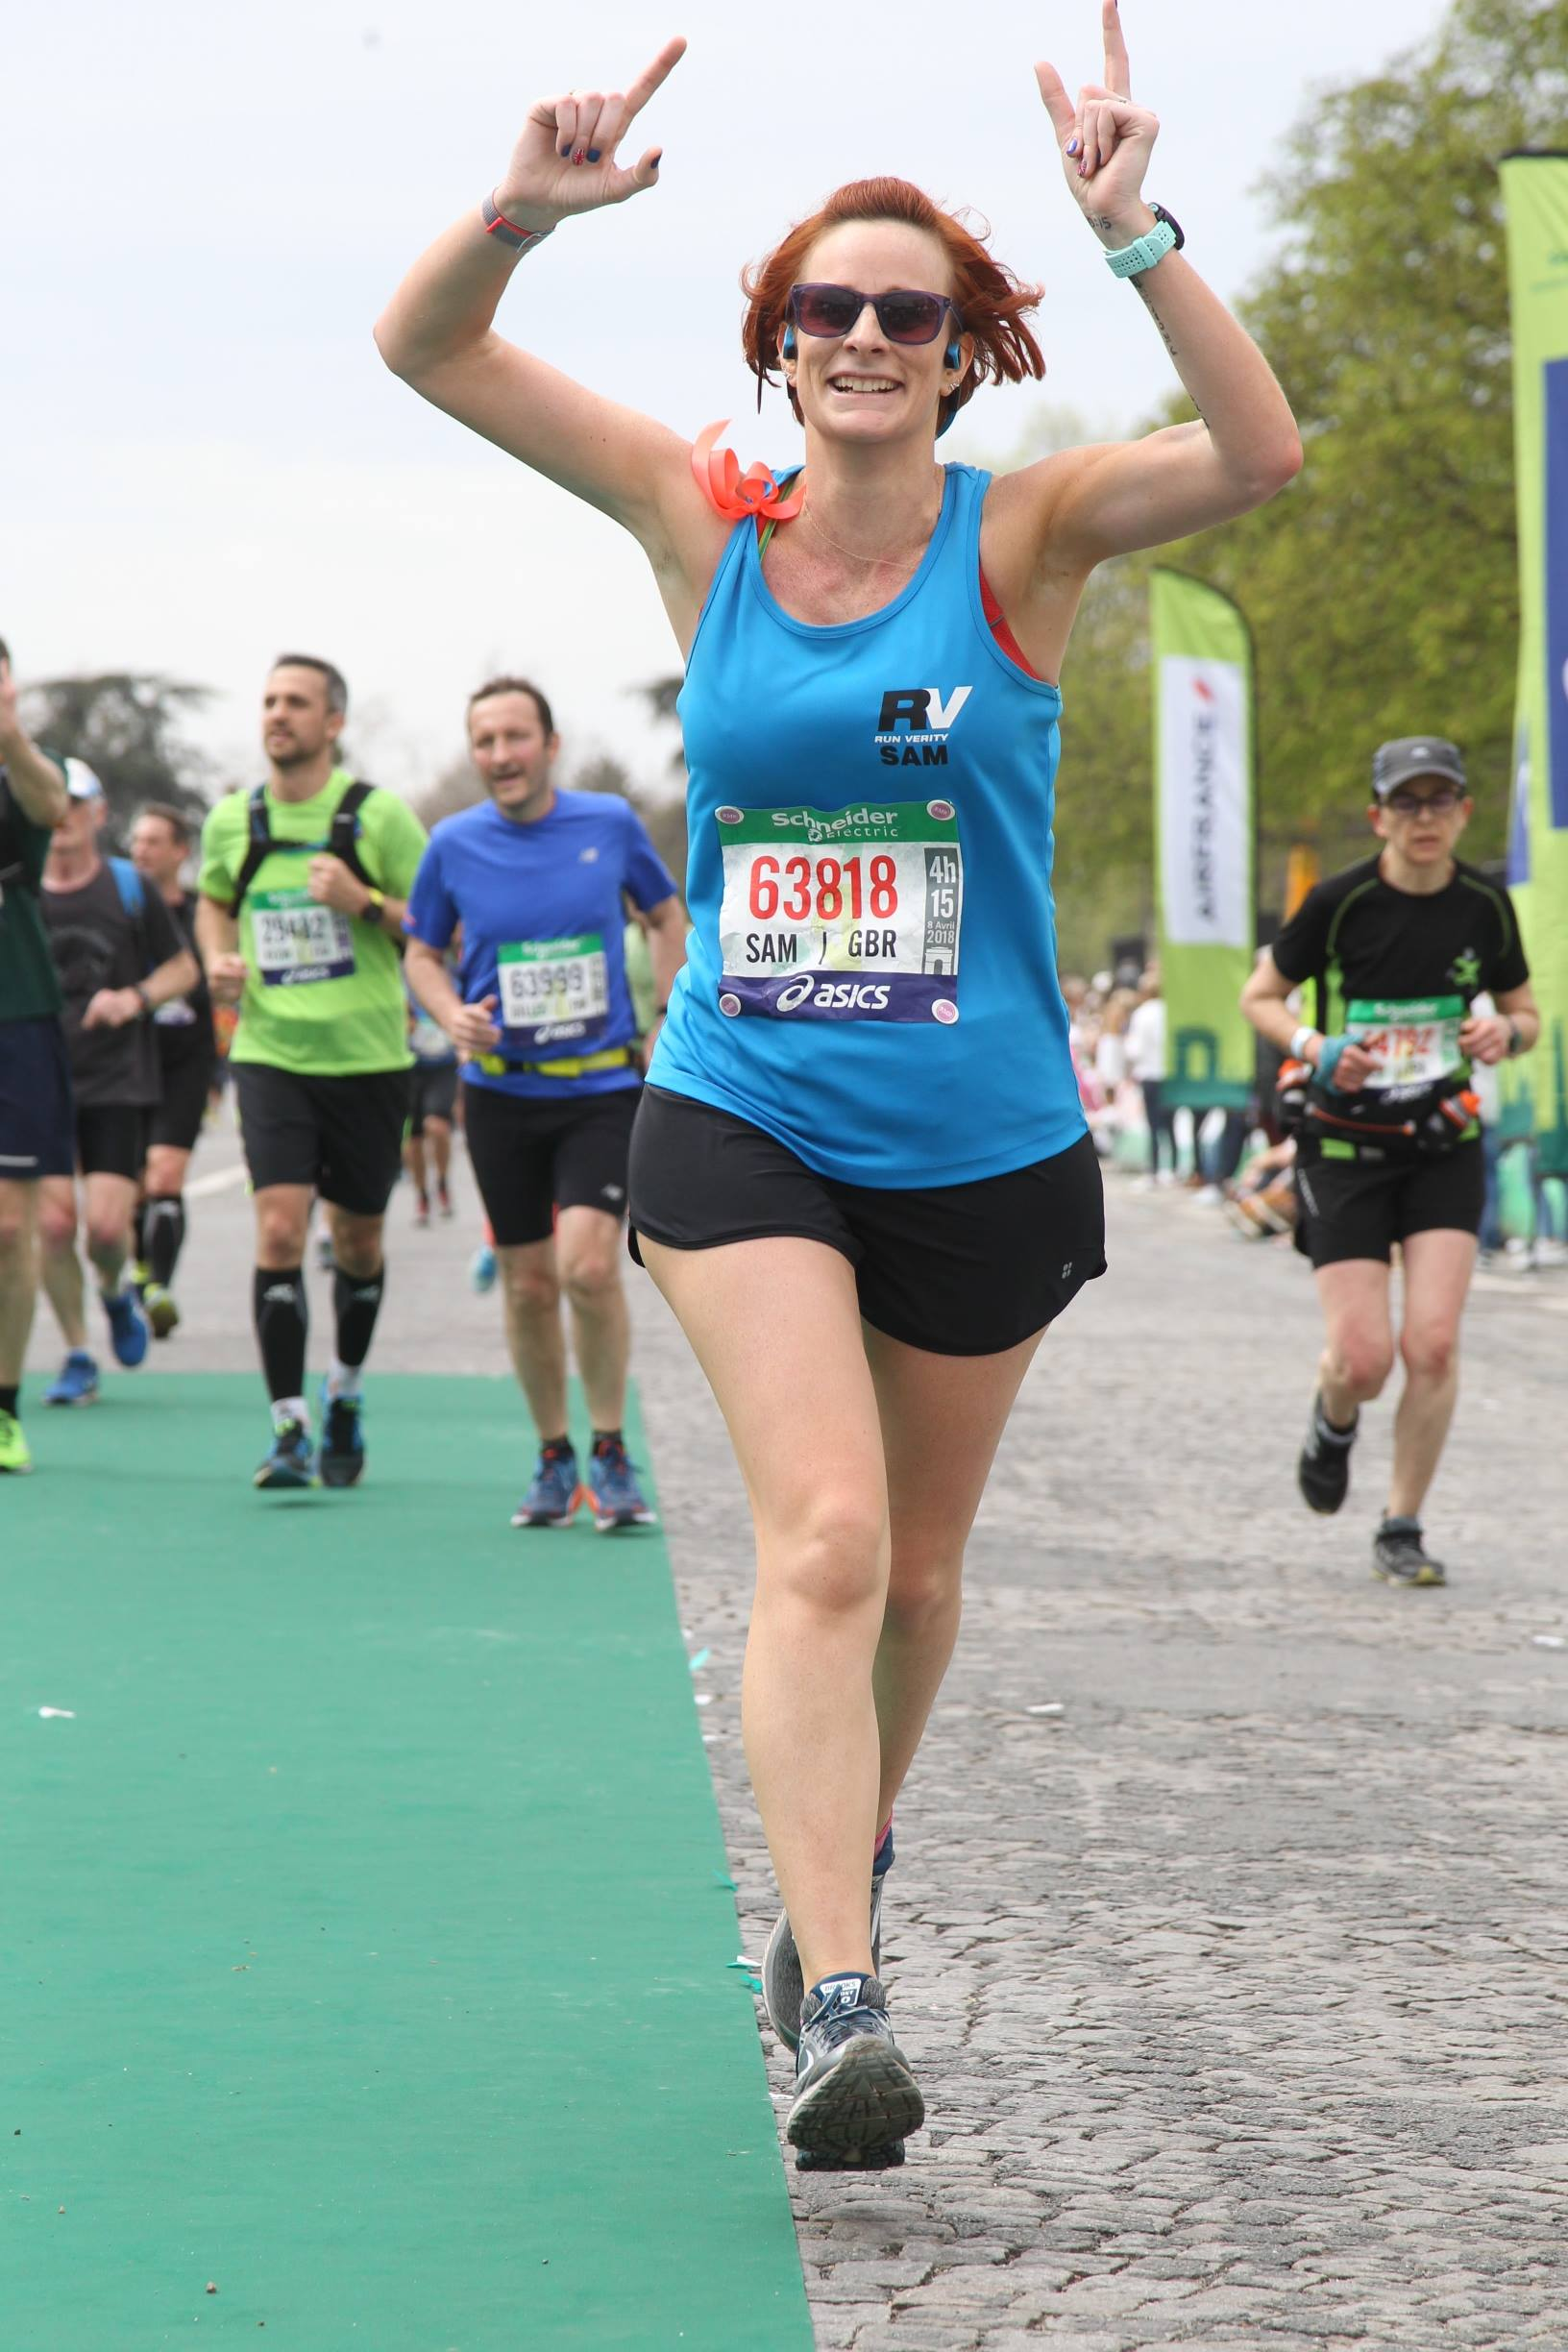 Paris Marathon 2018 - Sam joined RV in April 2017 as a complete beginner and a year later she completed Paris Marathon. The photograph shows that even after 26.2 miles her posture is strong compared to the other runners around her. Sam worked hard on her technique over the course of the year, she stayed injury free as she increased her miles and achieved a long held ambition to run a marathon.